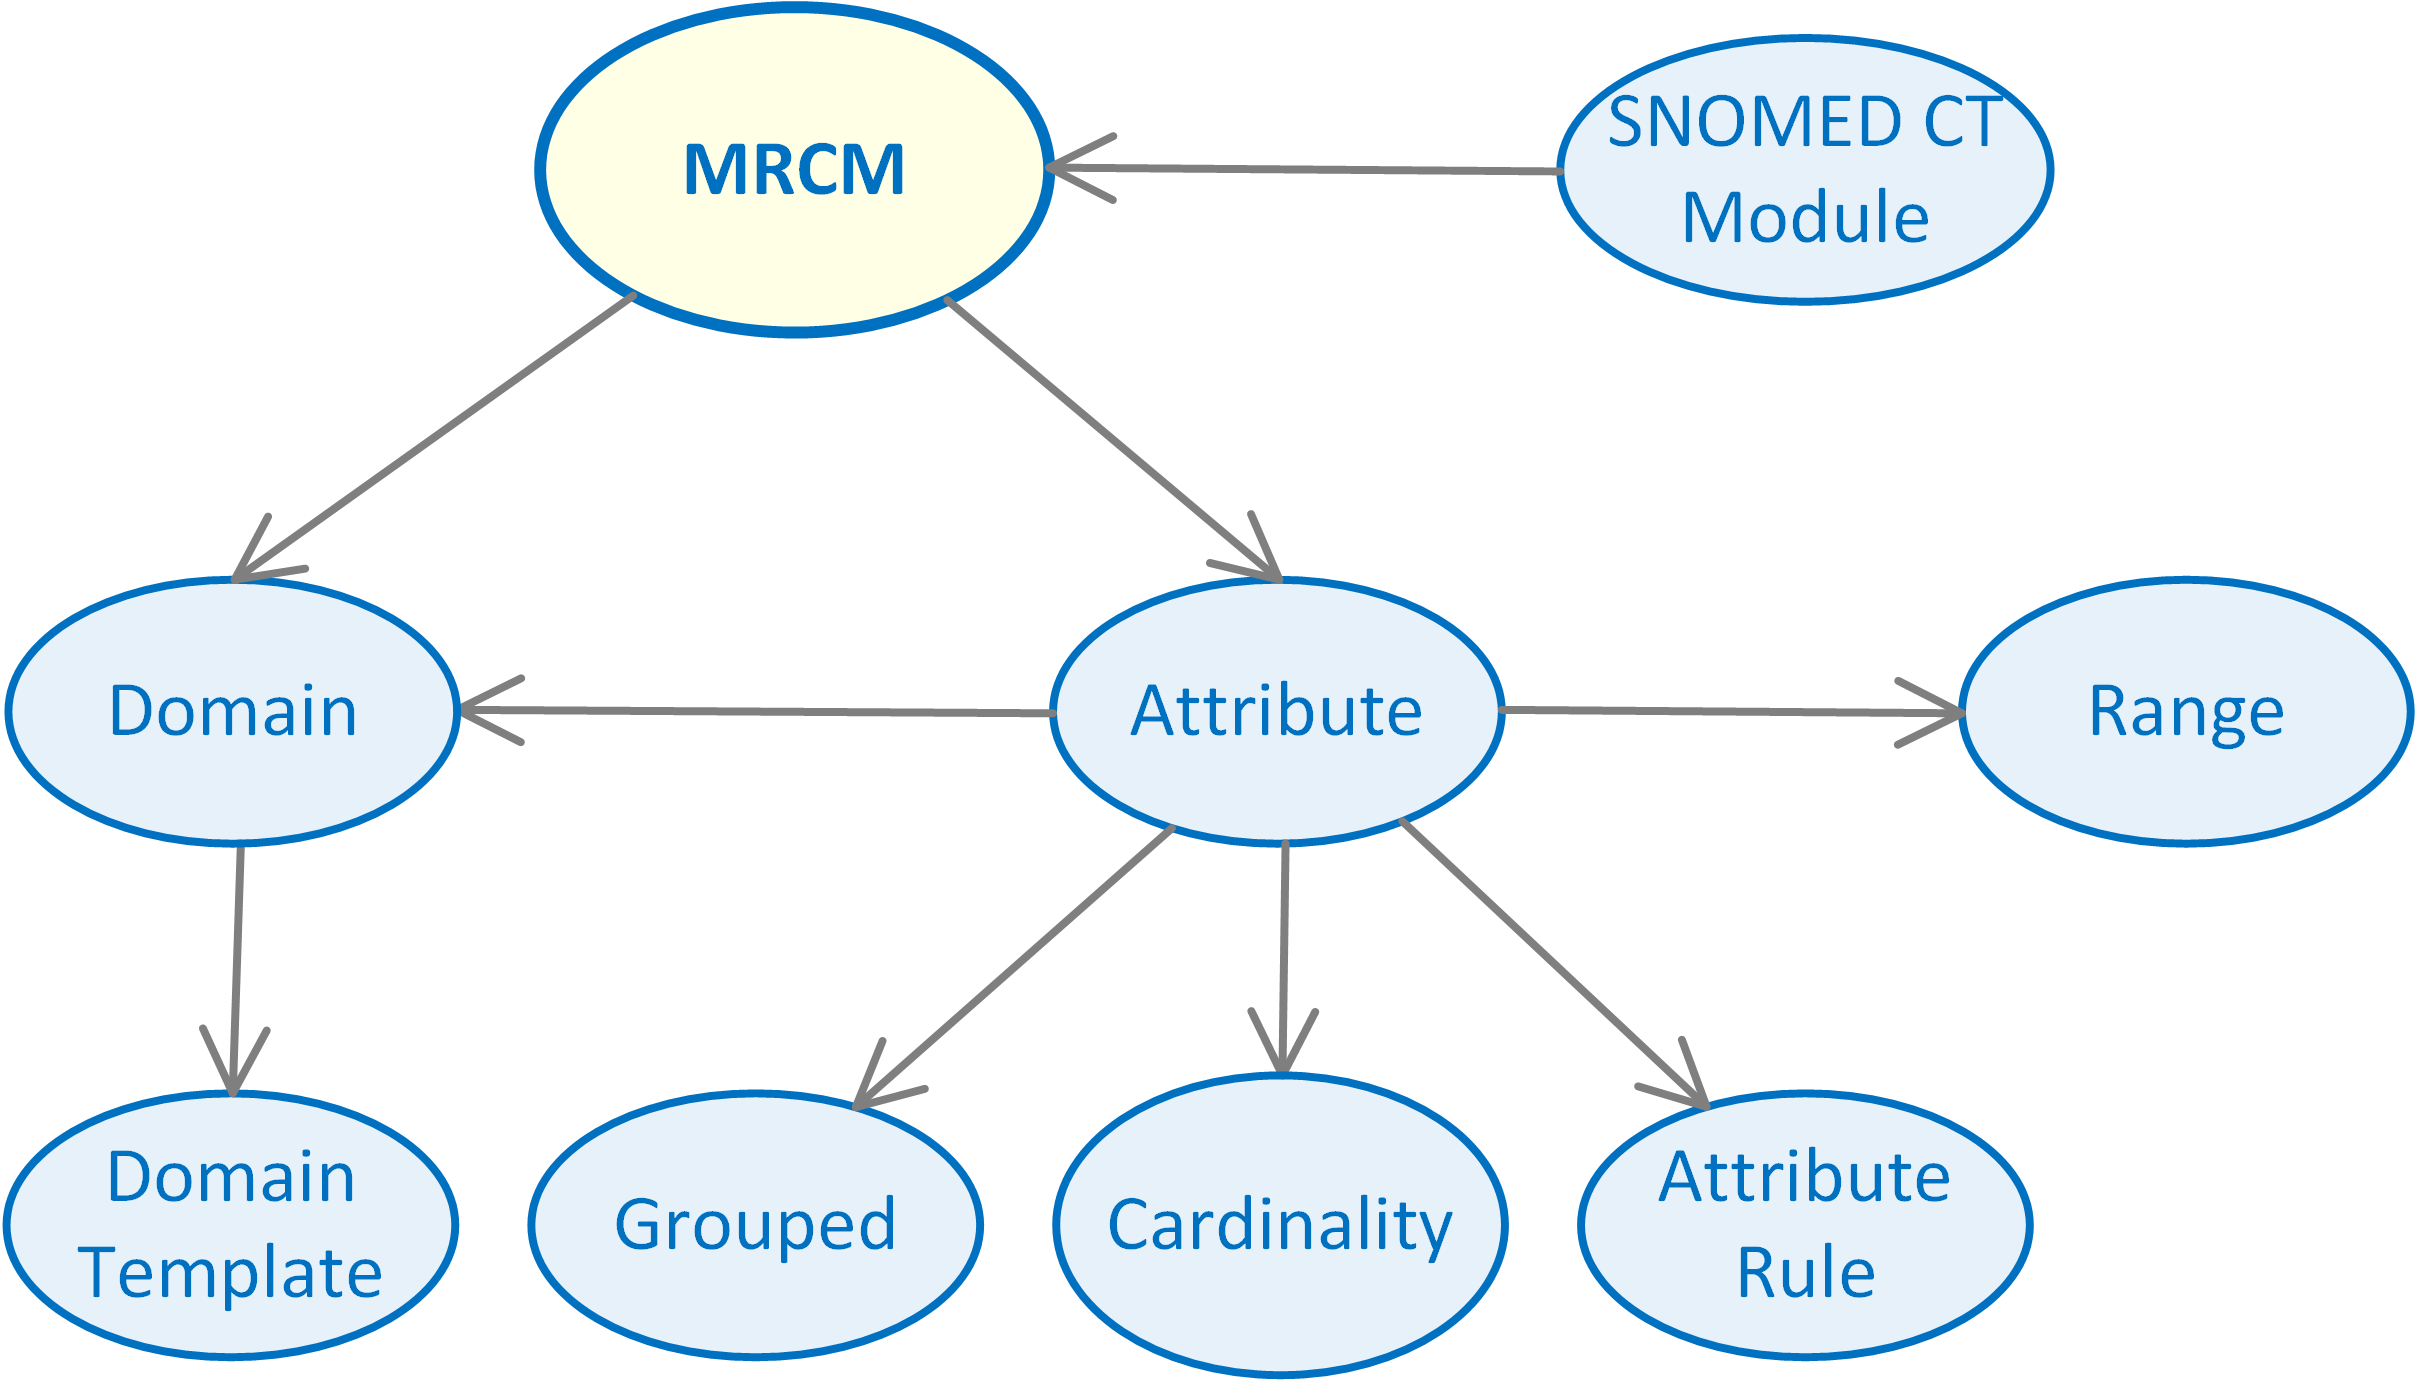 4 logical design machine readable concept model snomed confluence figure 4 1 abstract model of the snomed ct mrcm pooptronica Images